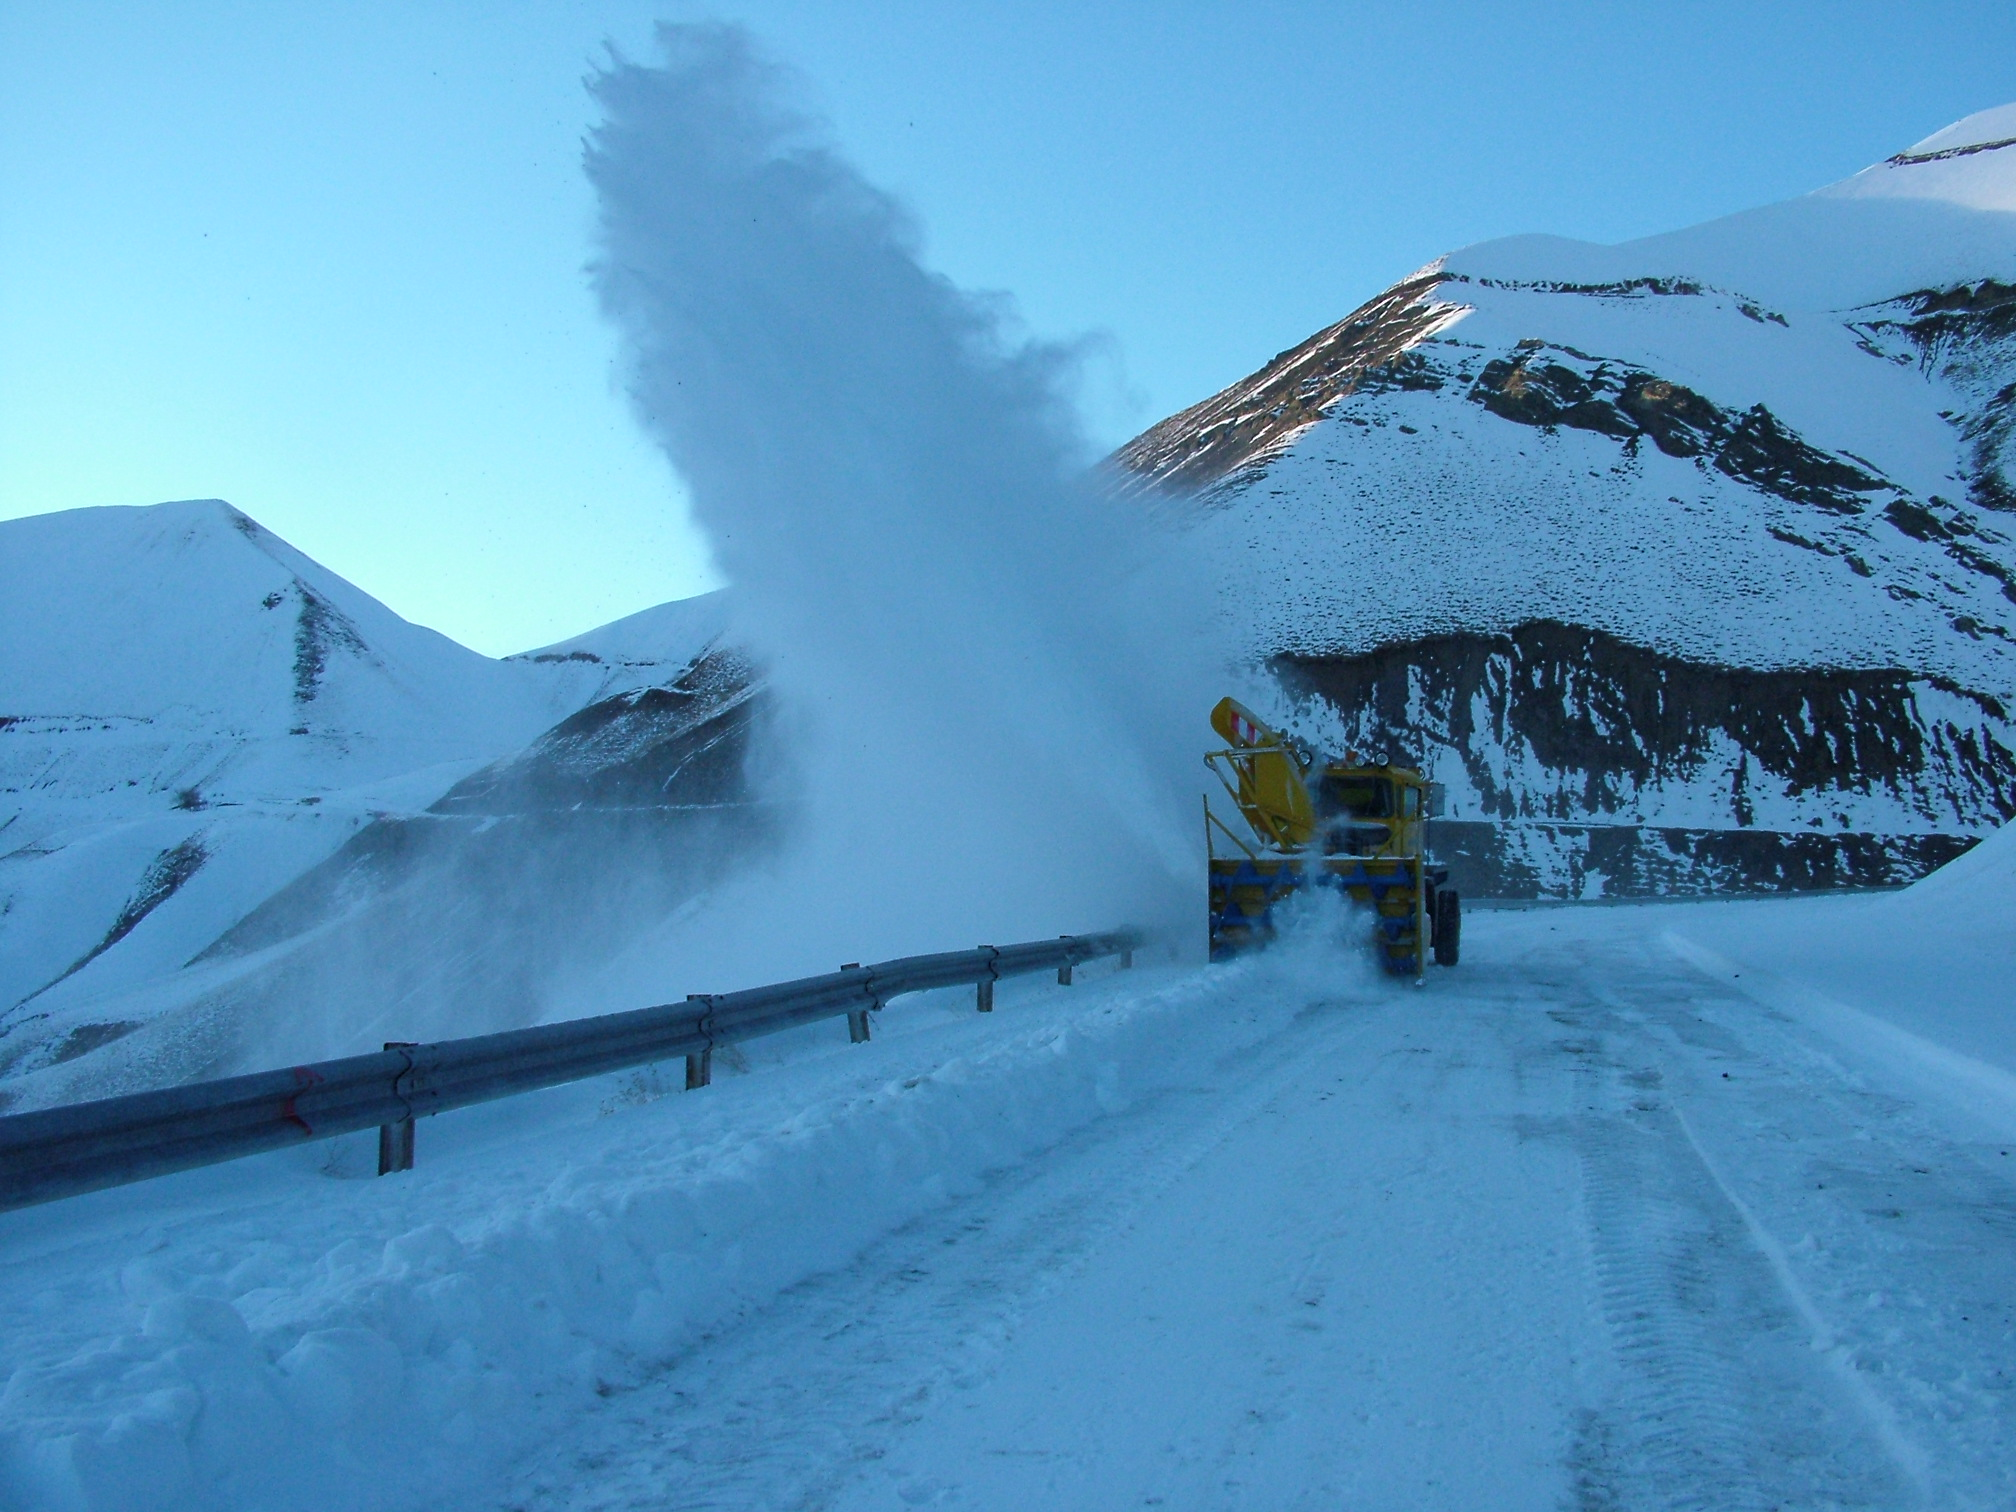 """<span  class=""""uc_style_uc_tiles_grid_image_elementor_uc_items_attribute_title"""" style=""""color:#ffffff;"""">Snow Blower</span>"""